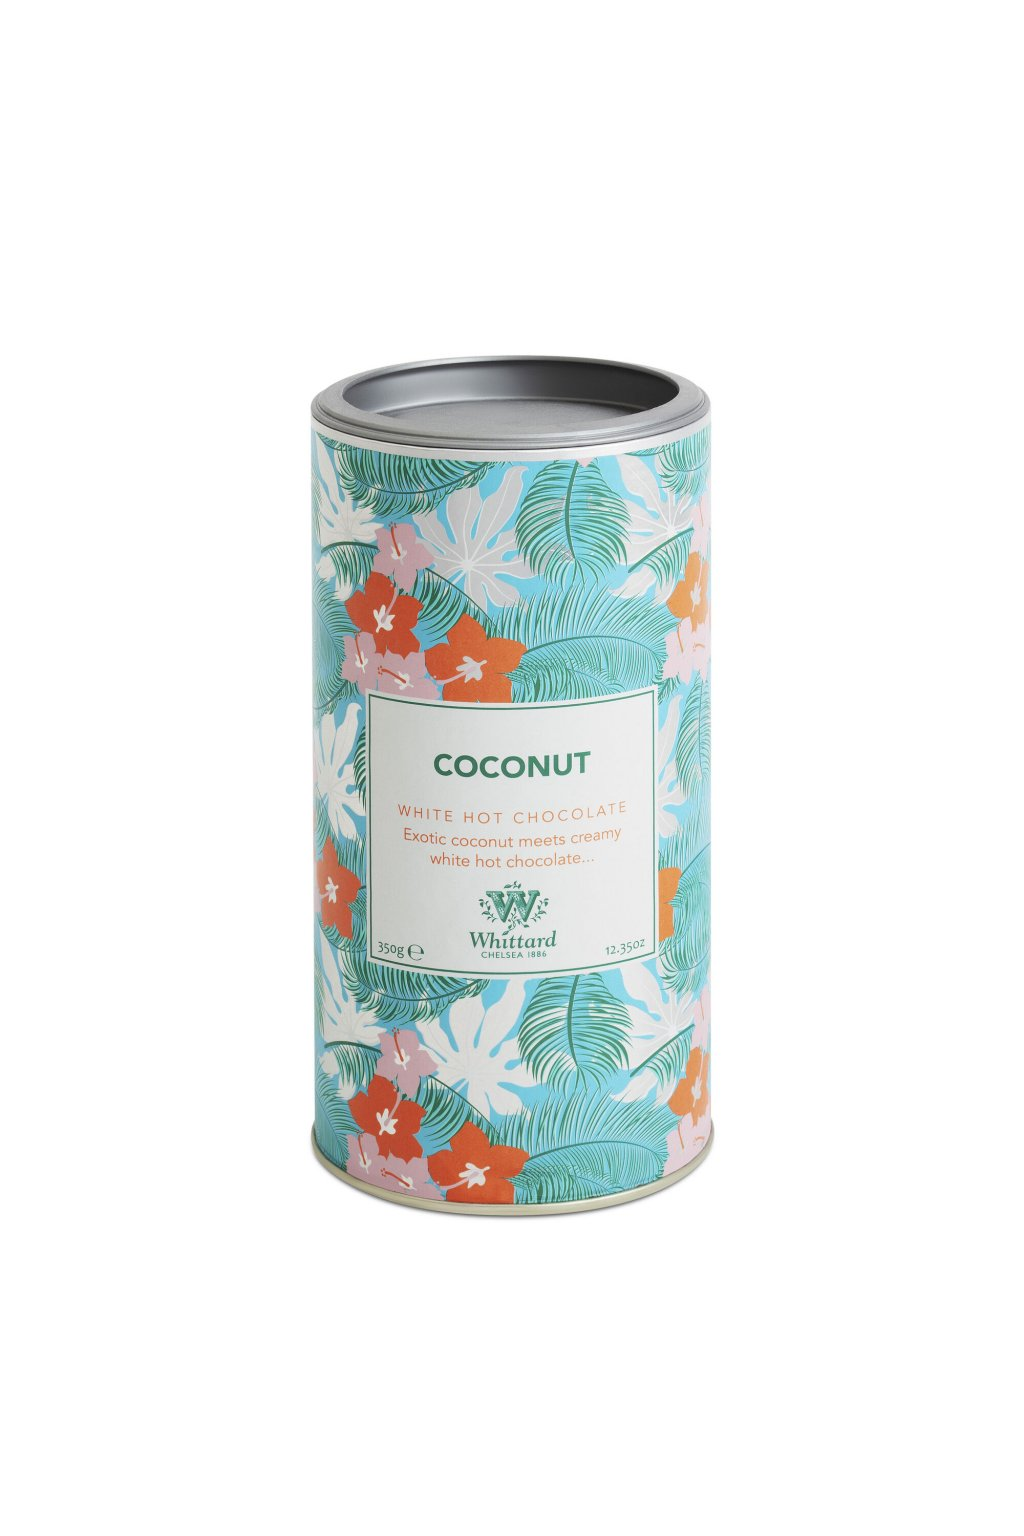 341479 LTD ED COCONUT WHITE HOT CHOC 1